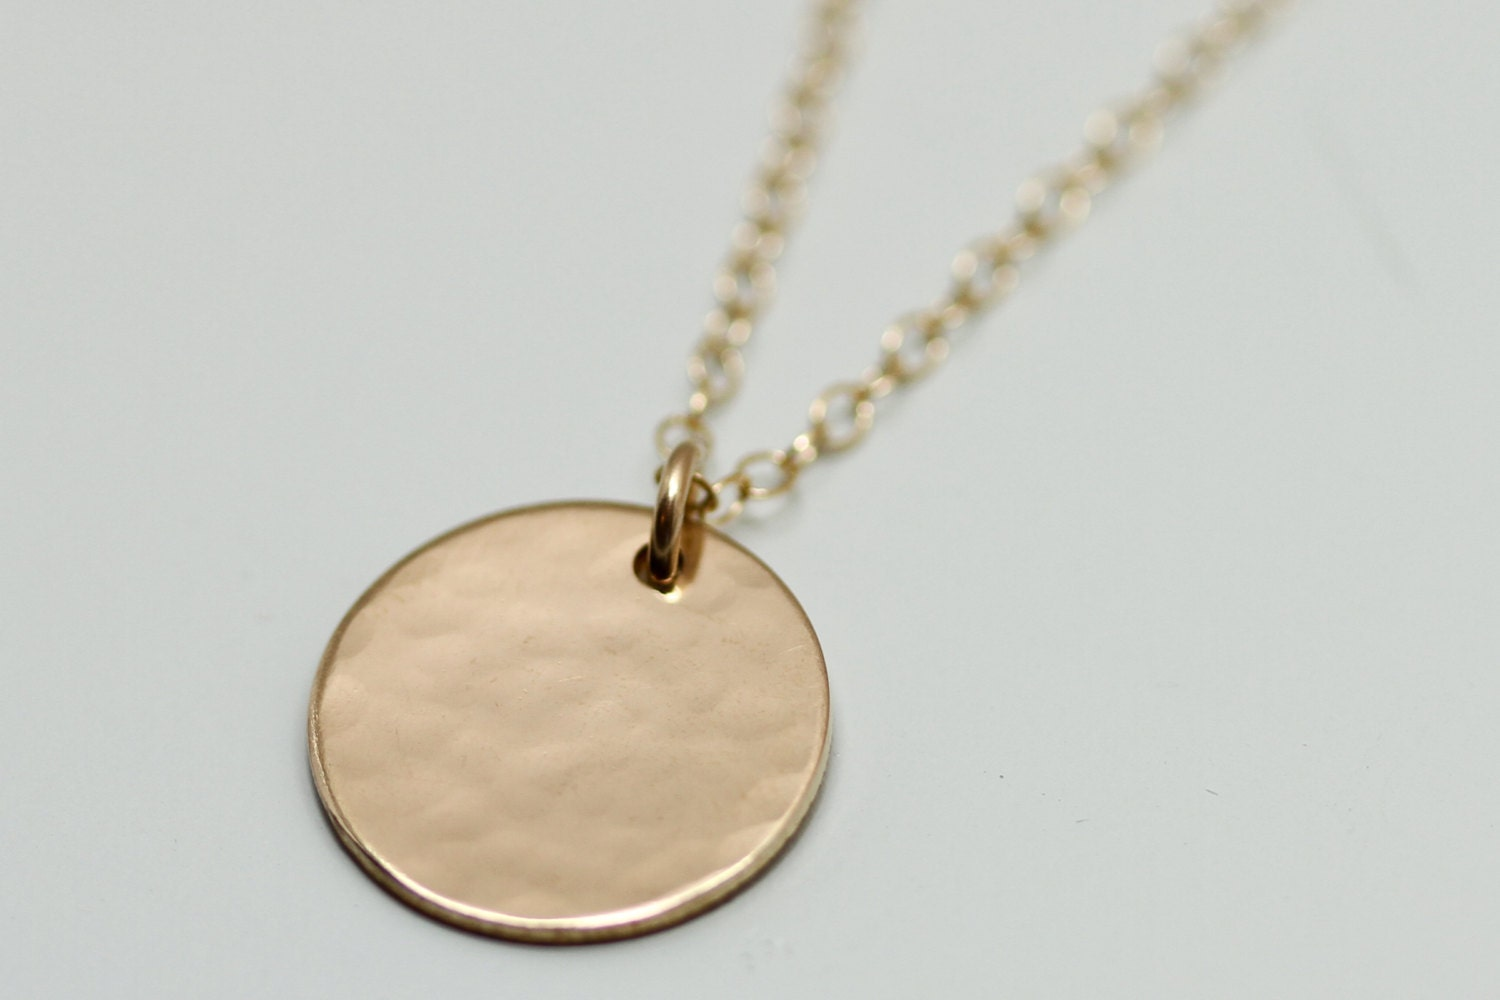 gold disc necklace dainty gold necklace delicate gold. Black Bedroom Furniture Sets. Home Design Ideas